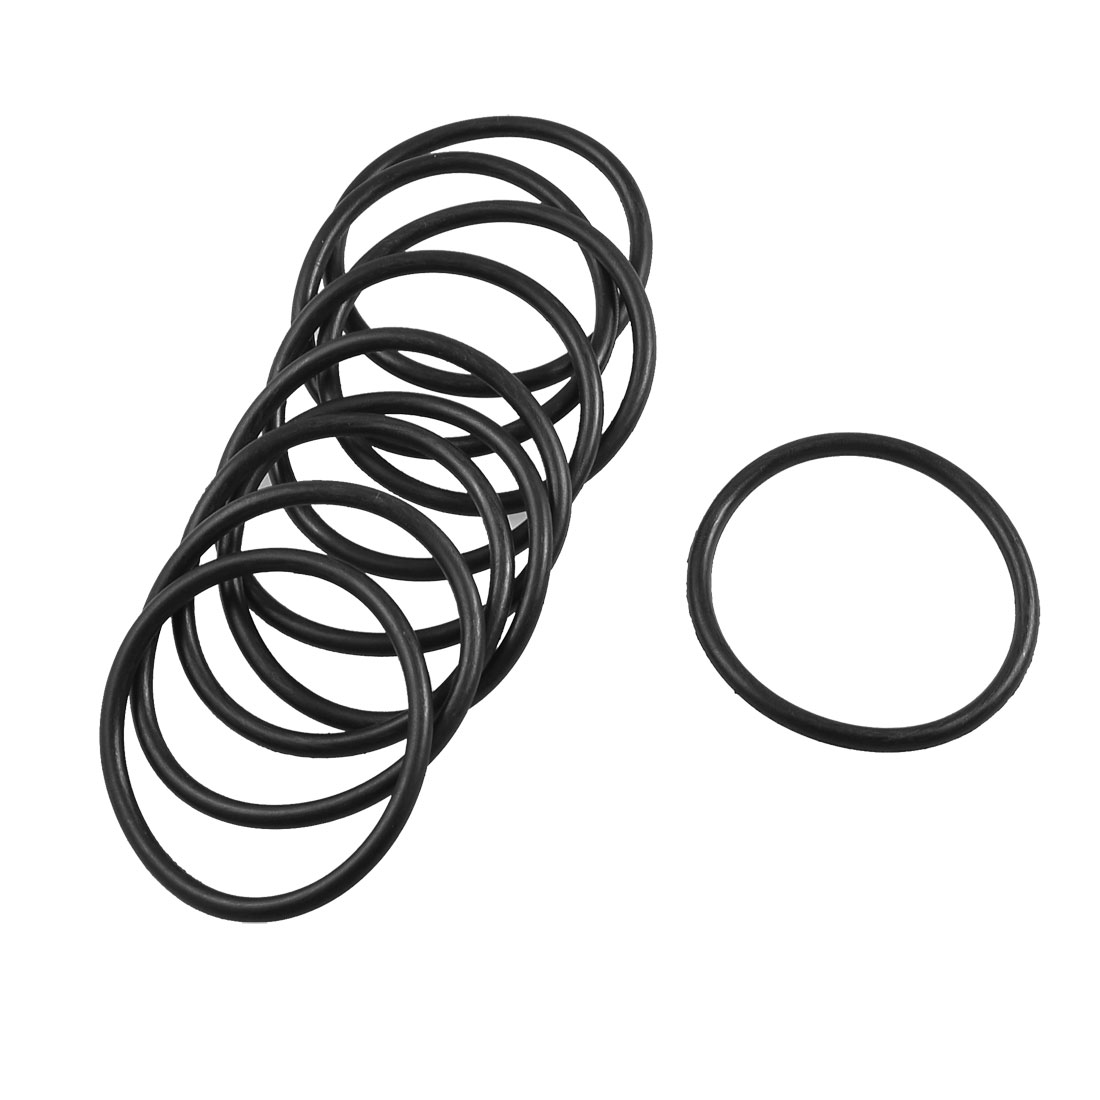 10 Pcs Mechanical Flexible Rubber O Ring Oil Seal Gaskets 41mm x 34mm x 3.5mm